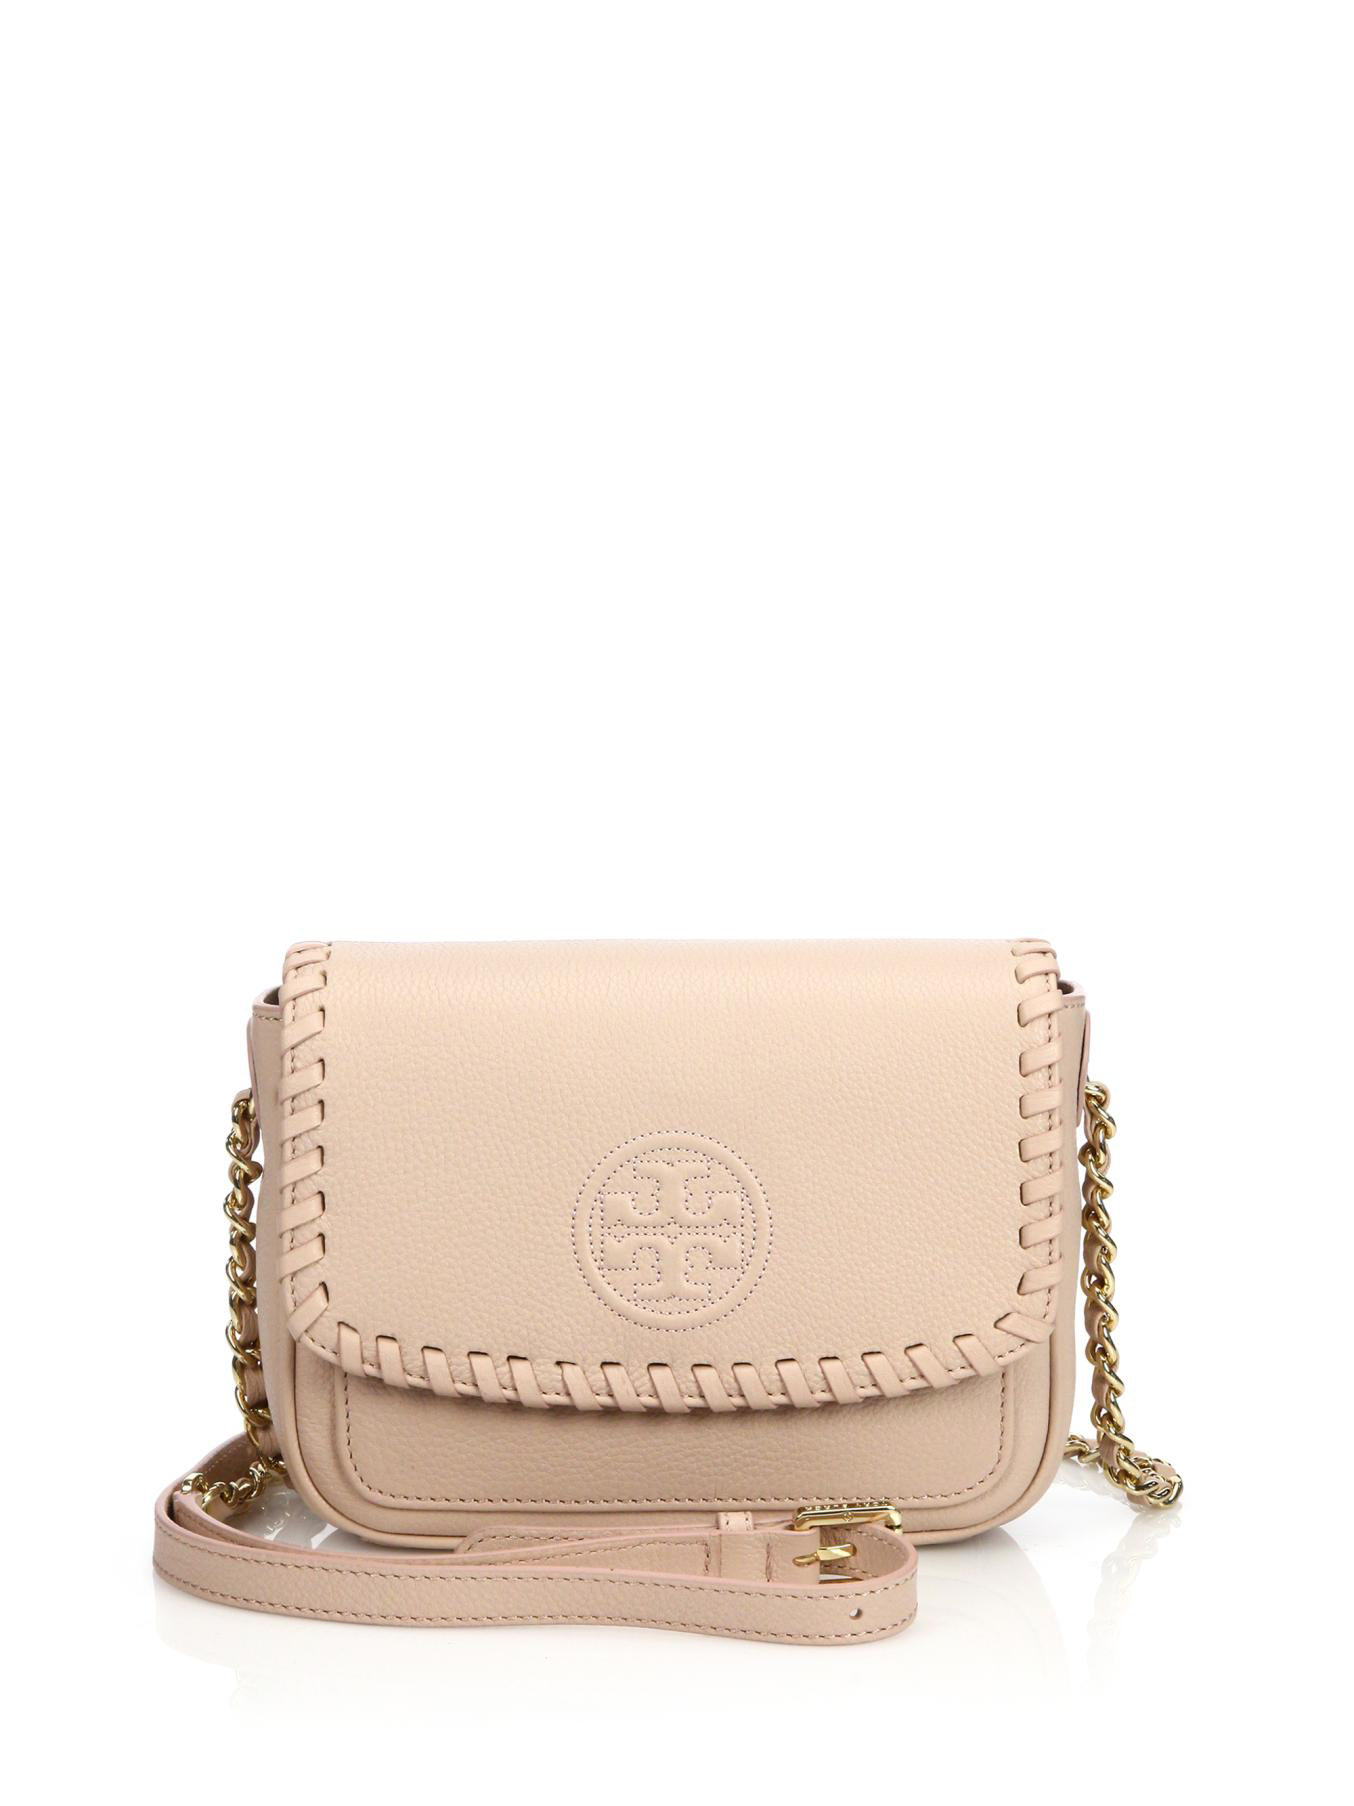 b4d1bfc03401 Gallery. Previously sold at  Saks Fifth Avenue · Women s Tory Burch Marion  ...